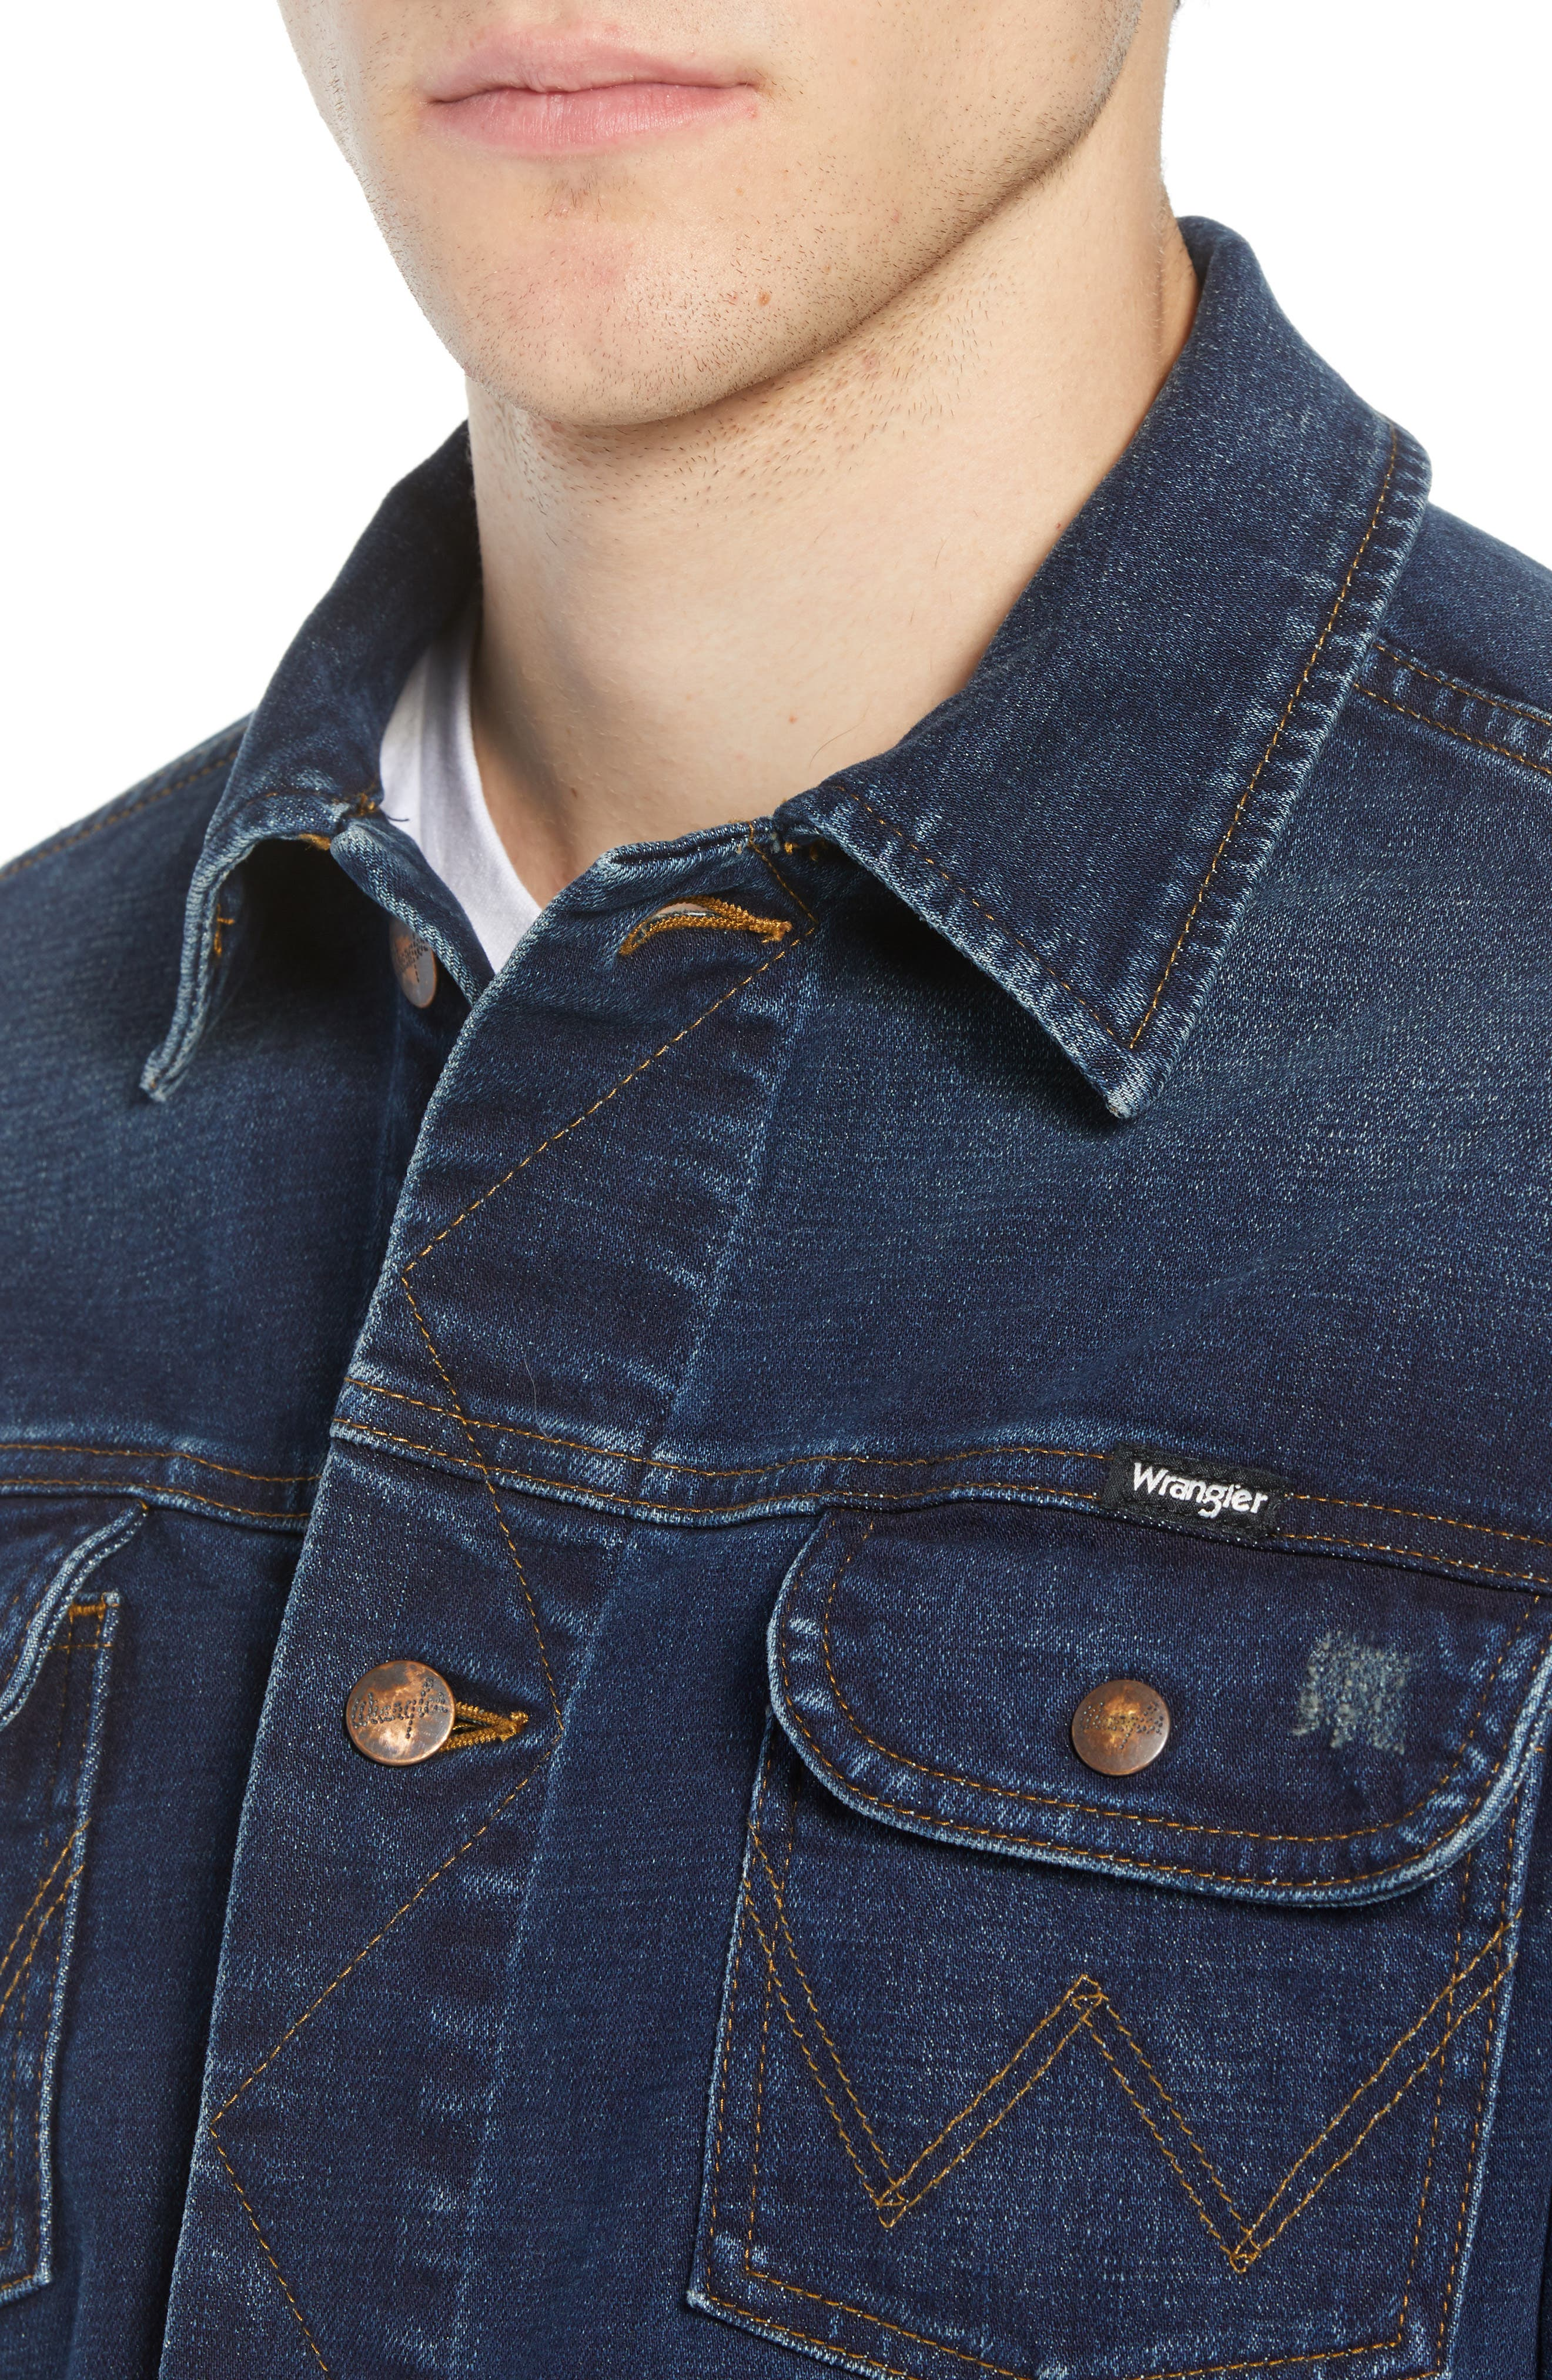 Heritage Denim Jacket,                             Alternate thumbnail 4, color,                             DARK WASH